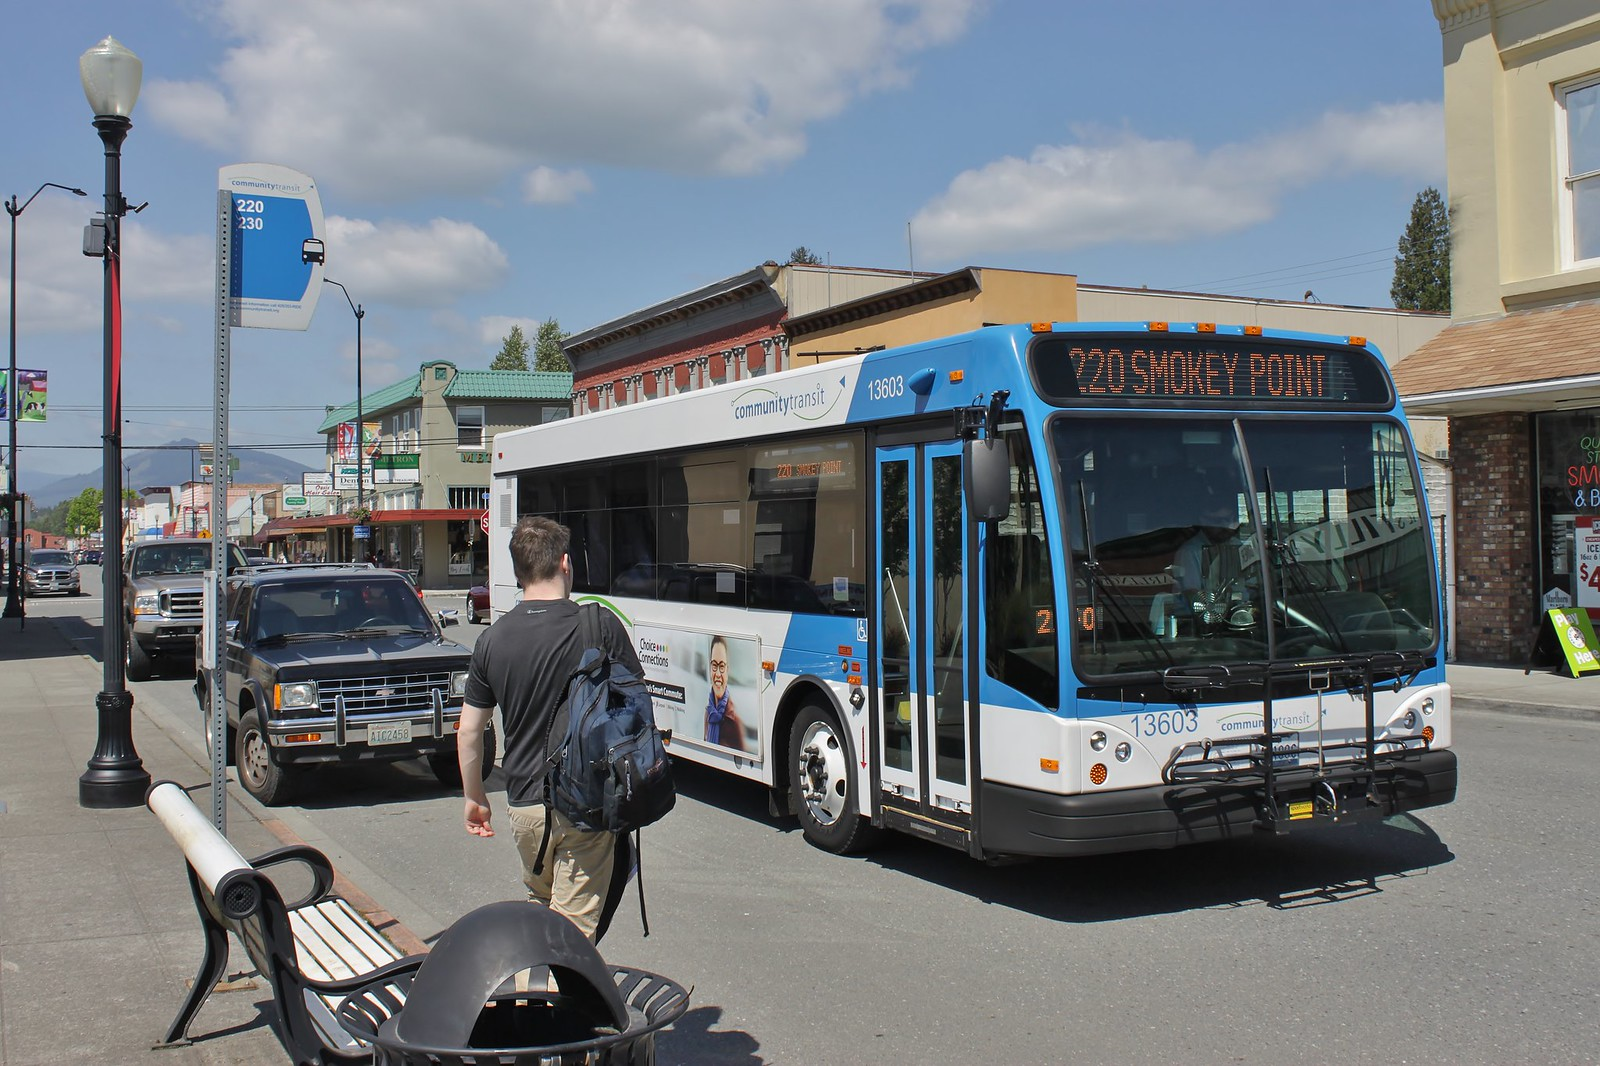 Transit Can't Work Without Pedestrian Priority – Seattle Transit Blog